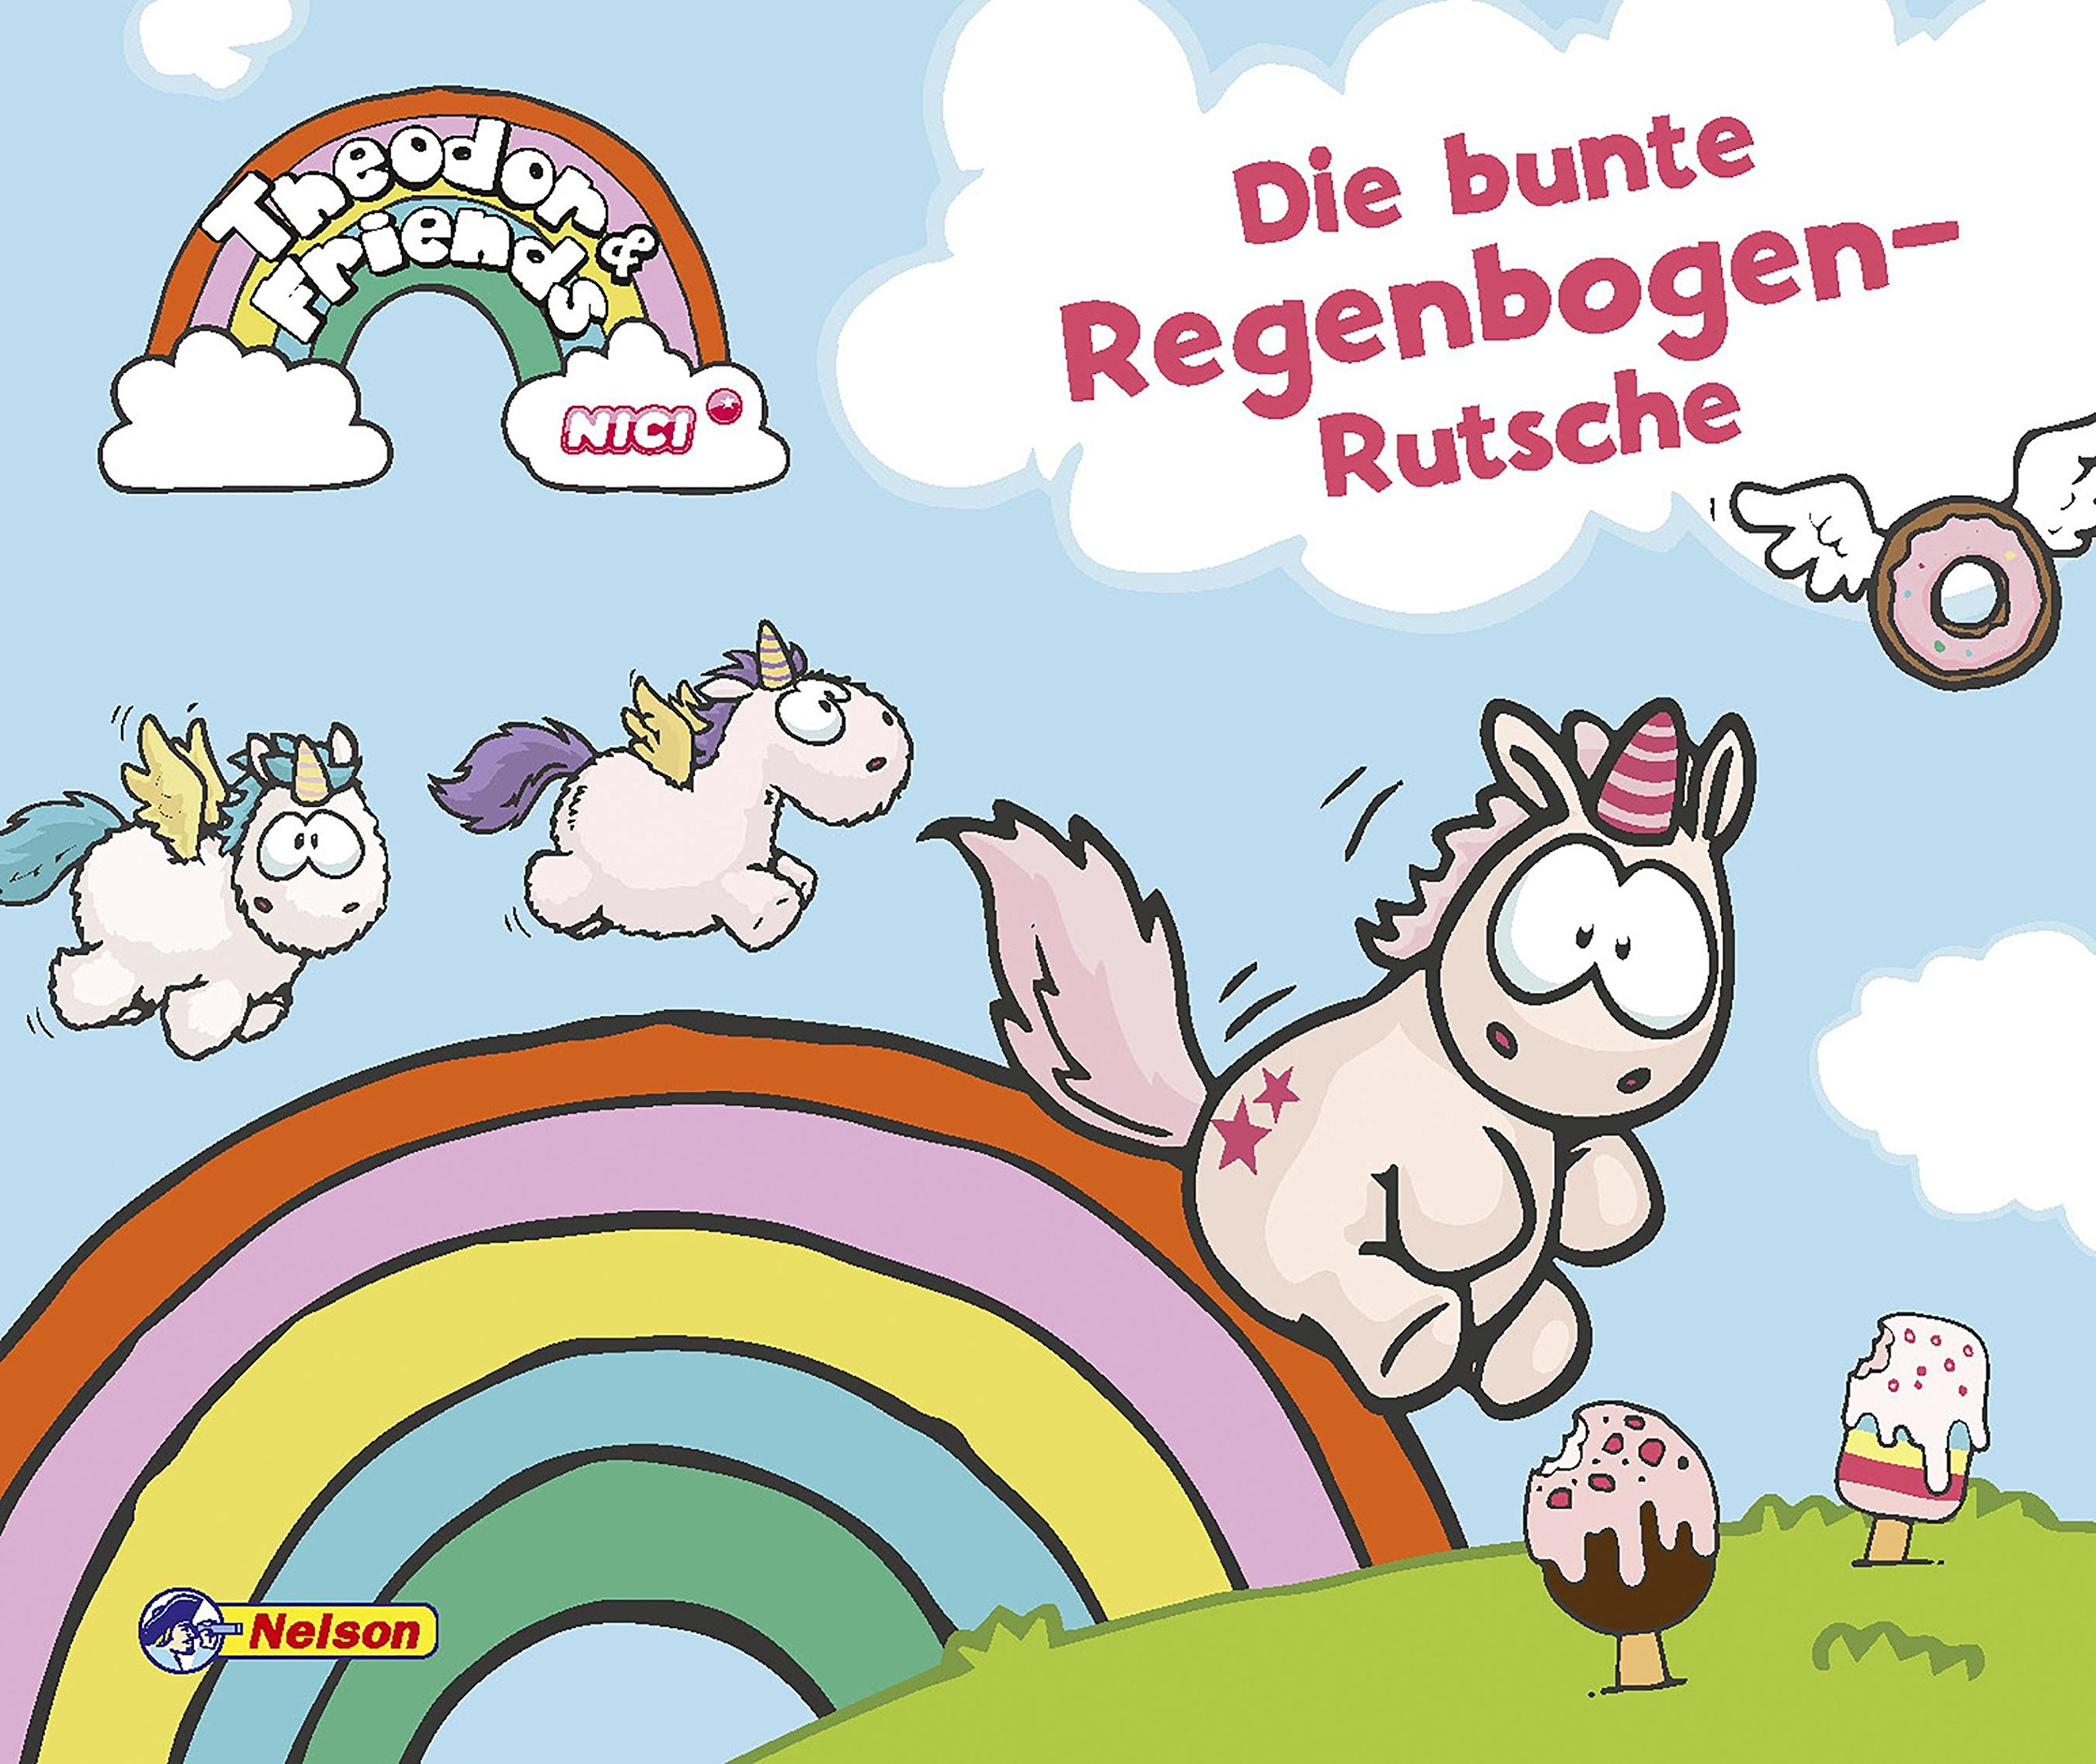 Theodor and Friends: Theodor and Friends: Die bunte Regenbogen-Rutsche